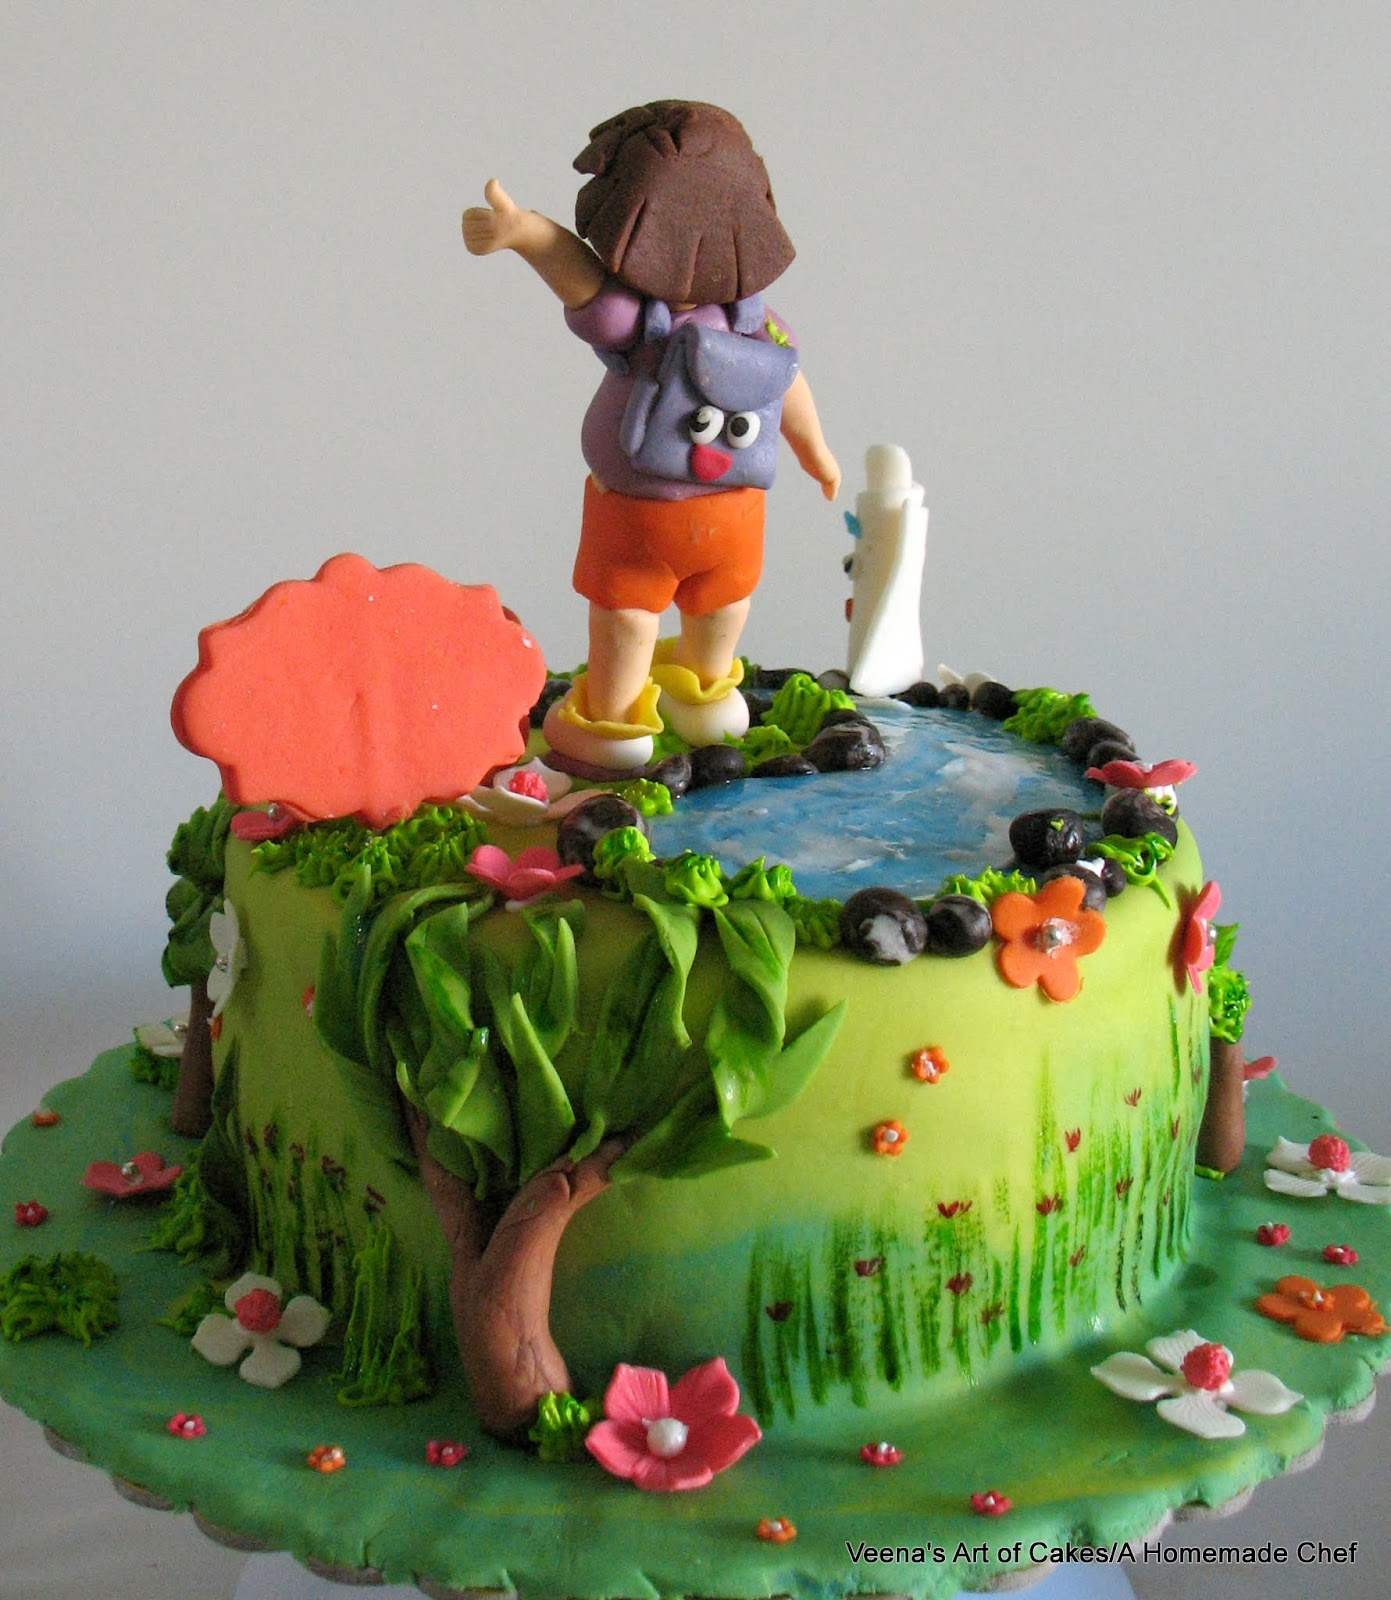 A cake decorated with Dora the explorer theme.